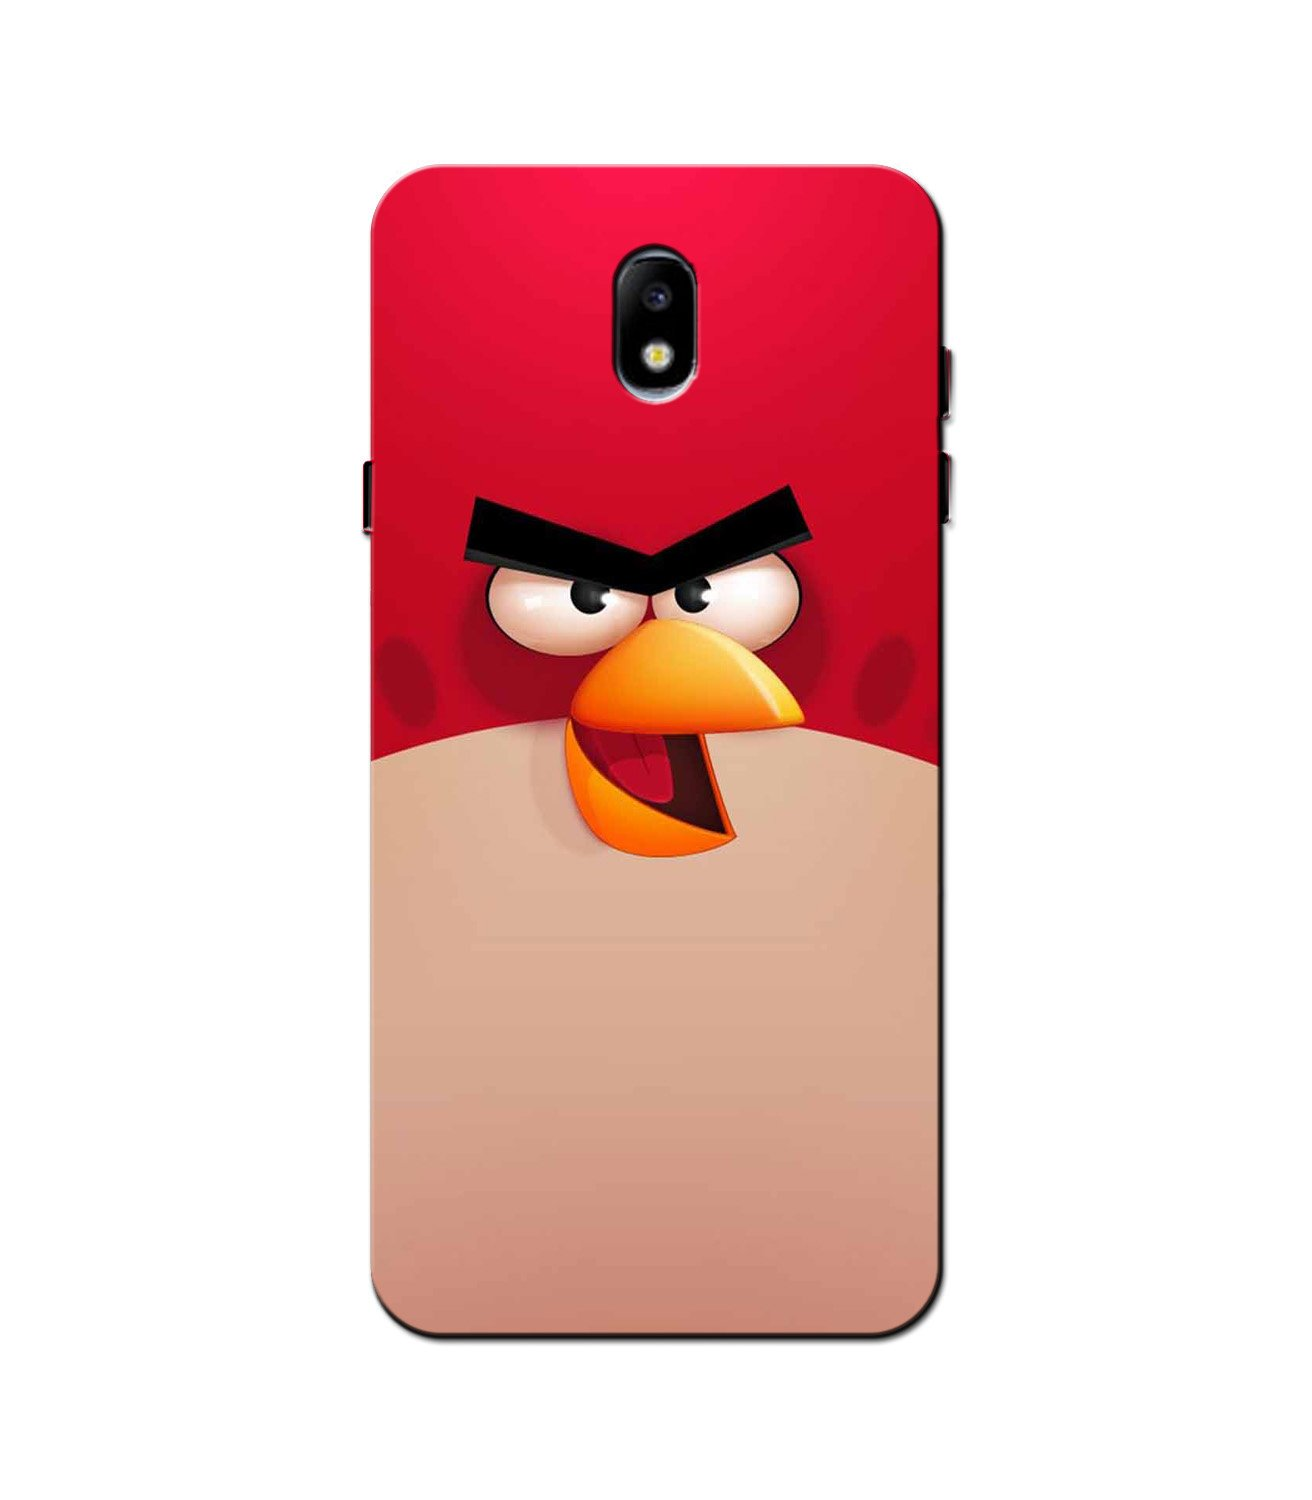 Angry Bird Red Mobile Back Case for Galaxy J3 Pro  (Design - 325)